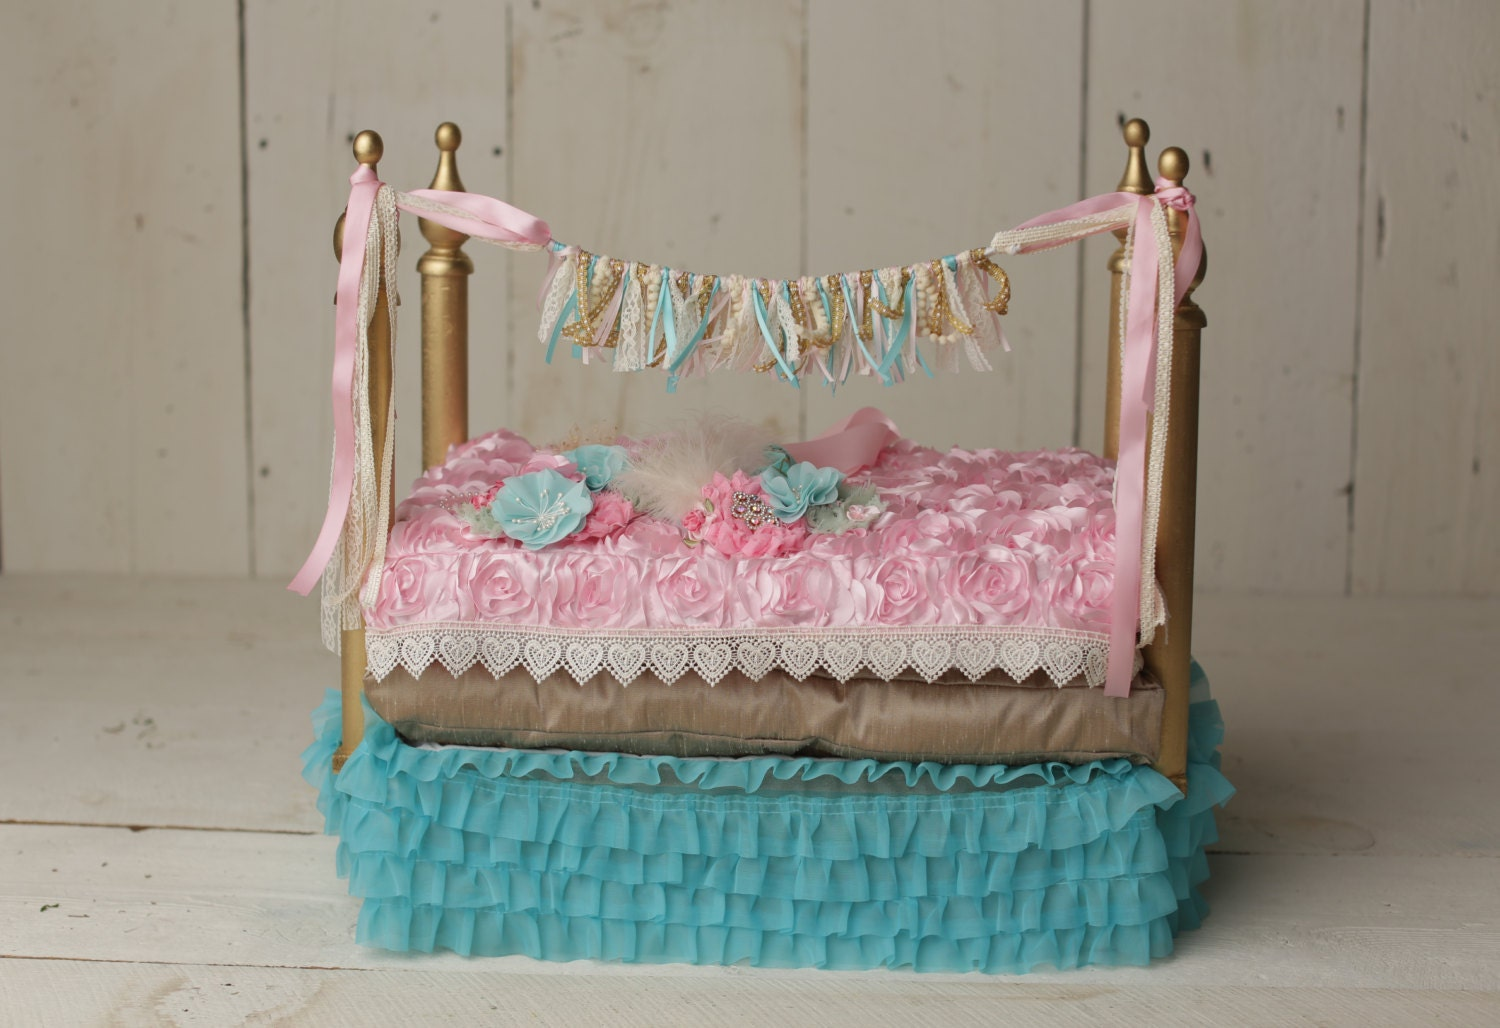 Baby bed in nigeria - Baby Marie Baby Bed Prop Newborn Baby Bed Photo Prop Marie Antoinette Inspired Colors Baby Items Props